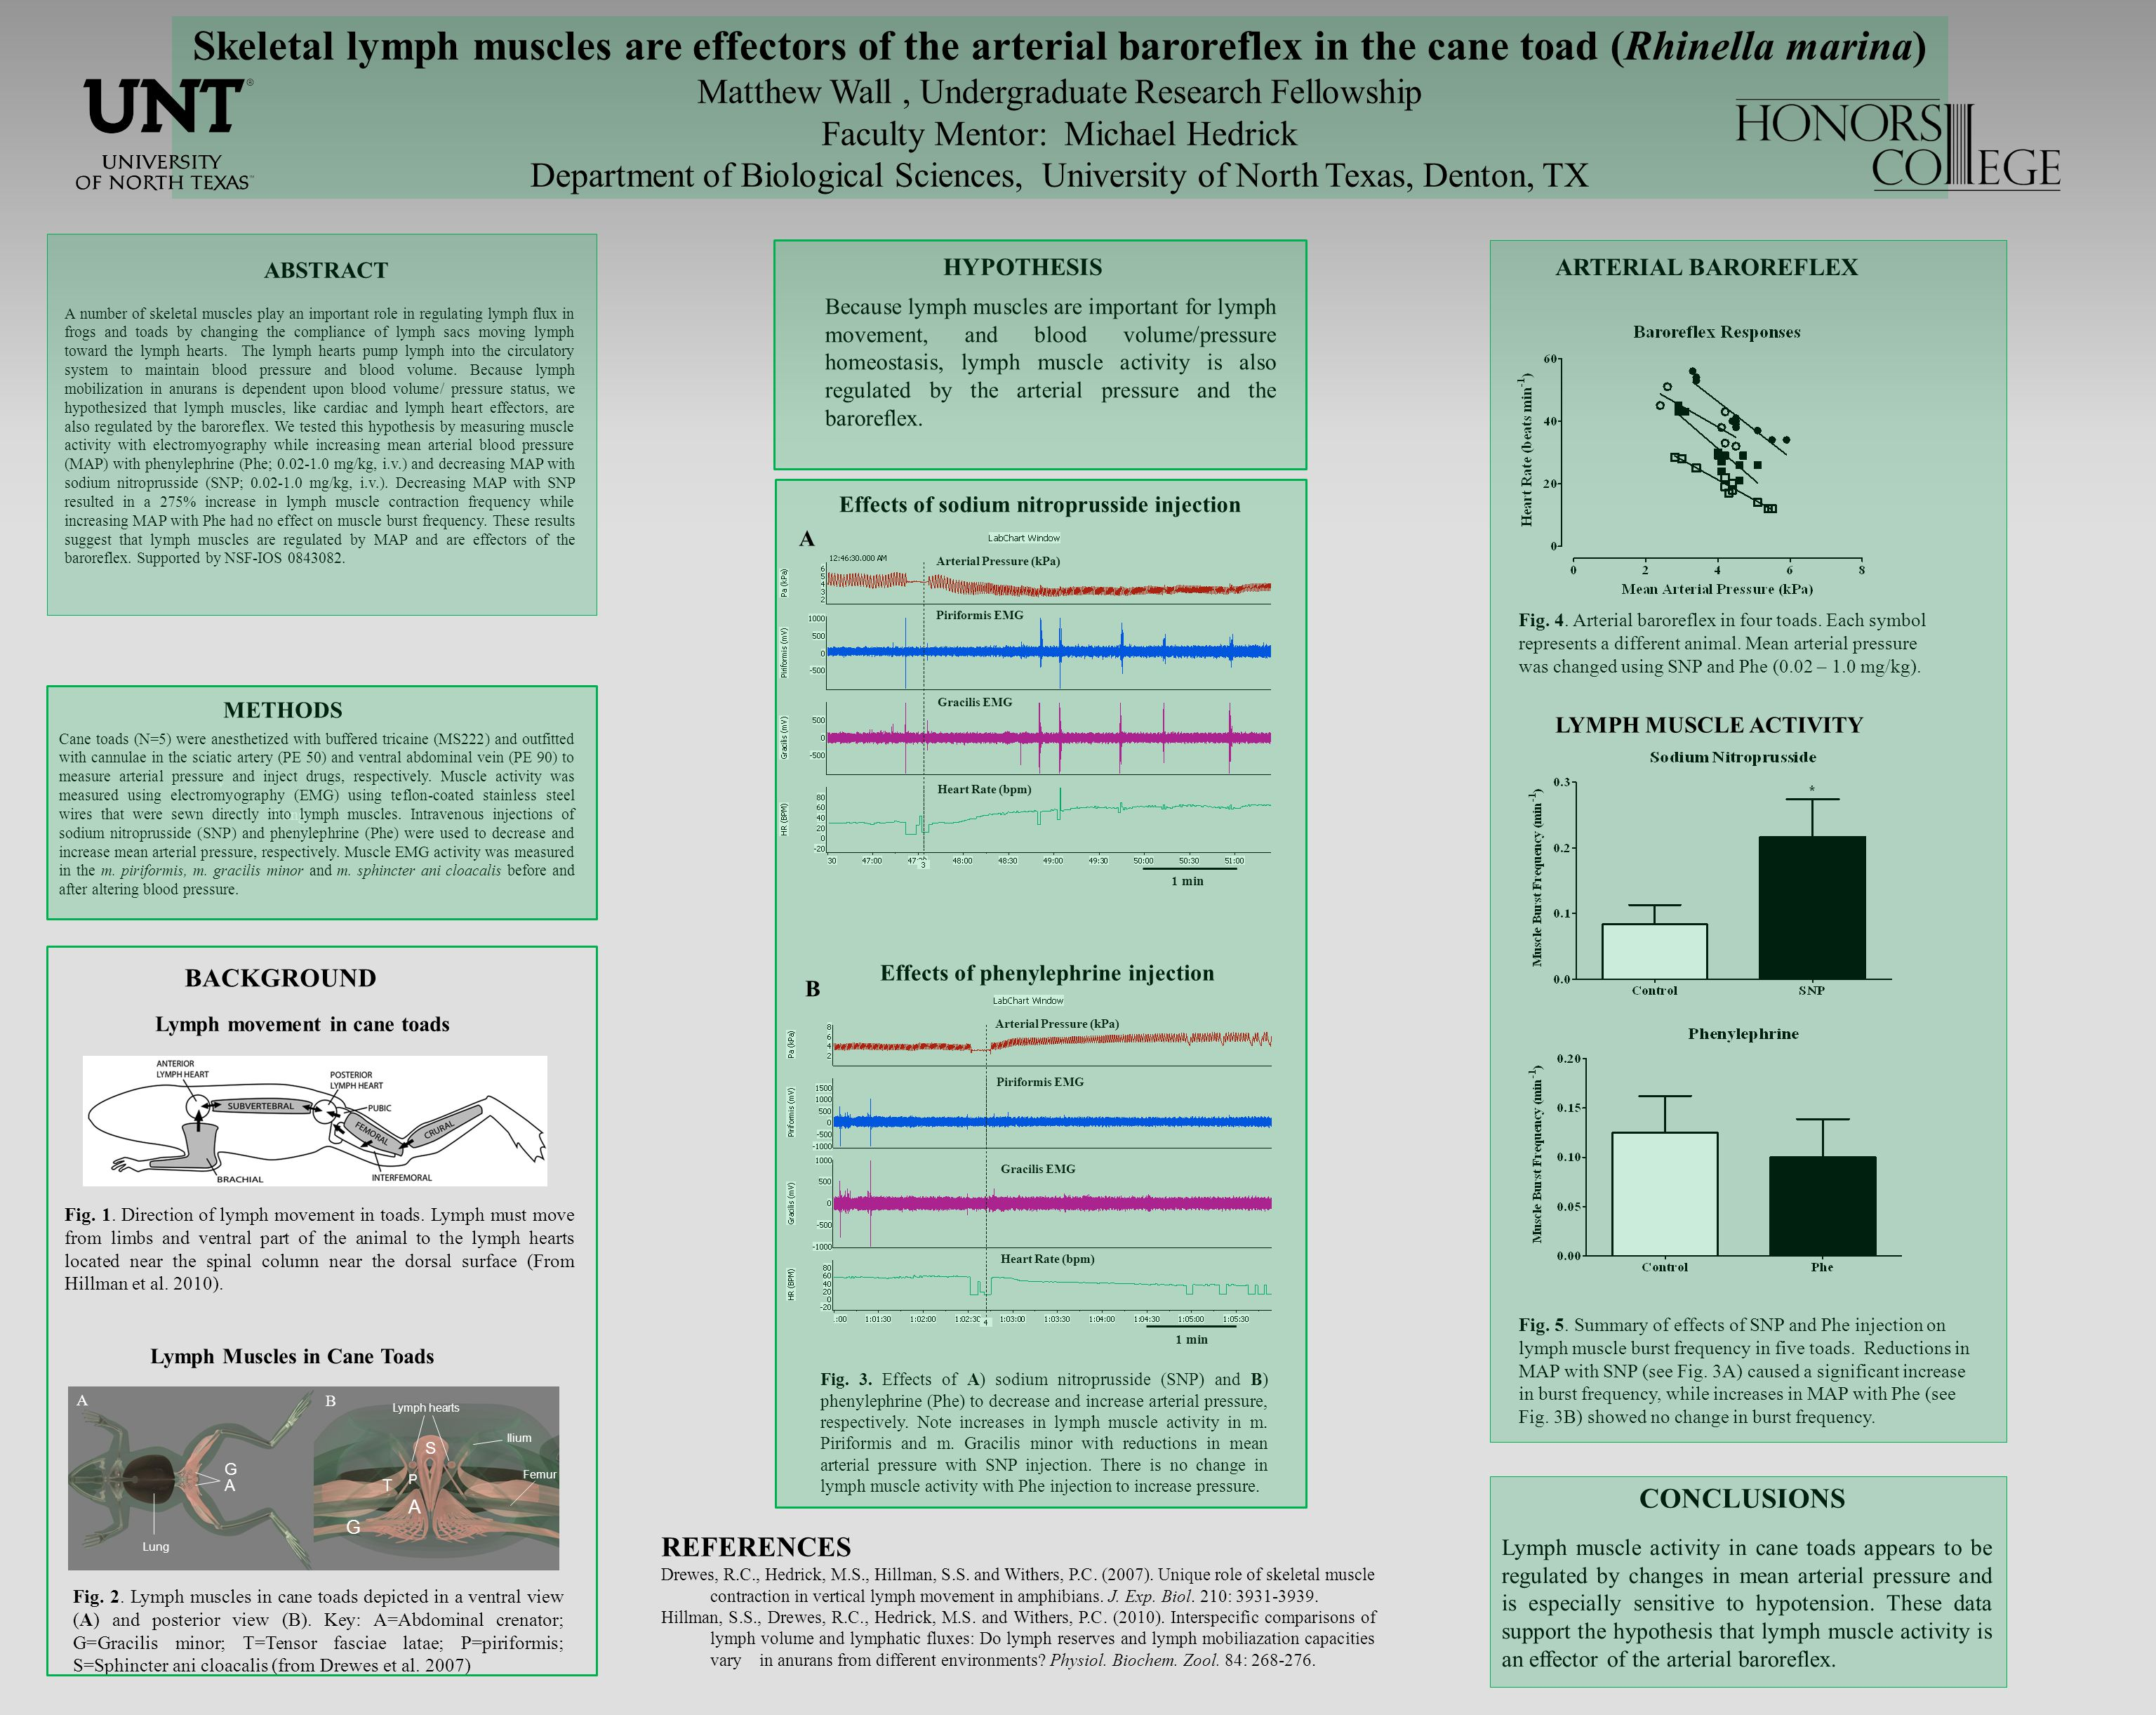 Skeletal lymph muscles are effectors of the arterial baroreflex in the cane toad (Rhinella marina) Matthew Wall, Undergraduate Research Fellowship Faculty Mentor: Michael Hedrick Department of Biological Sciences, University of North Texas, Denton, TX A number of skeletal muscles play an important role in regulating lymph flux in frogs and toads by changing the compliance of lymph sacs moving lymph toward the lymph hearts.